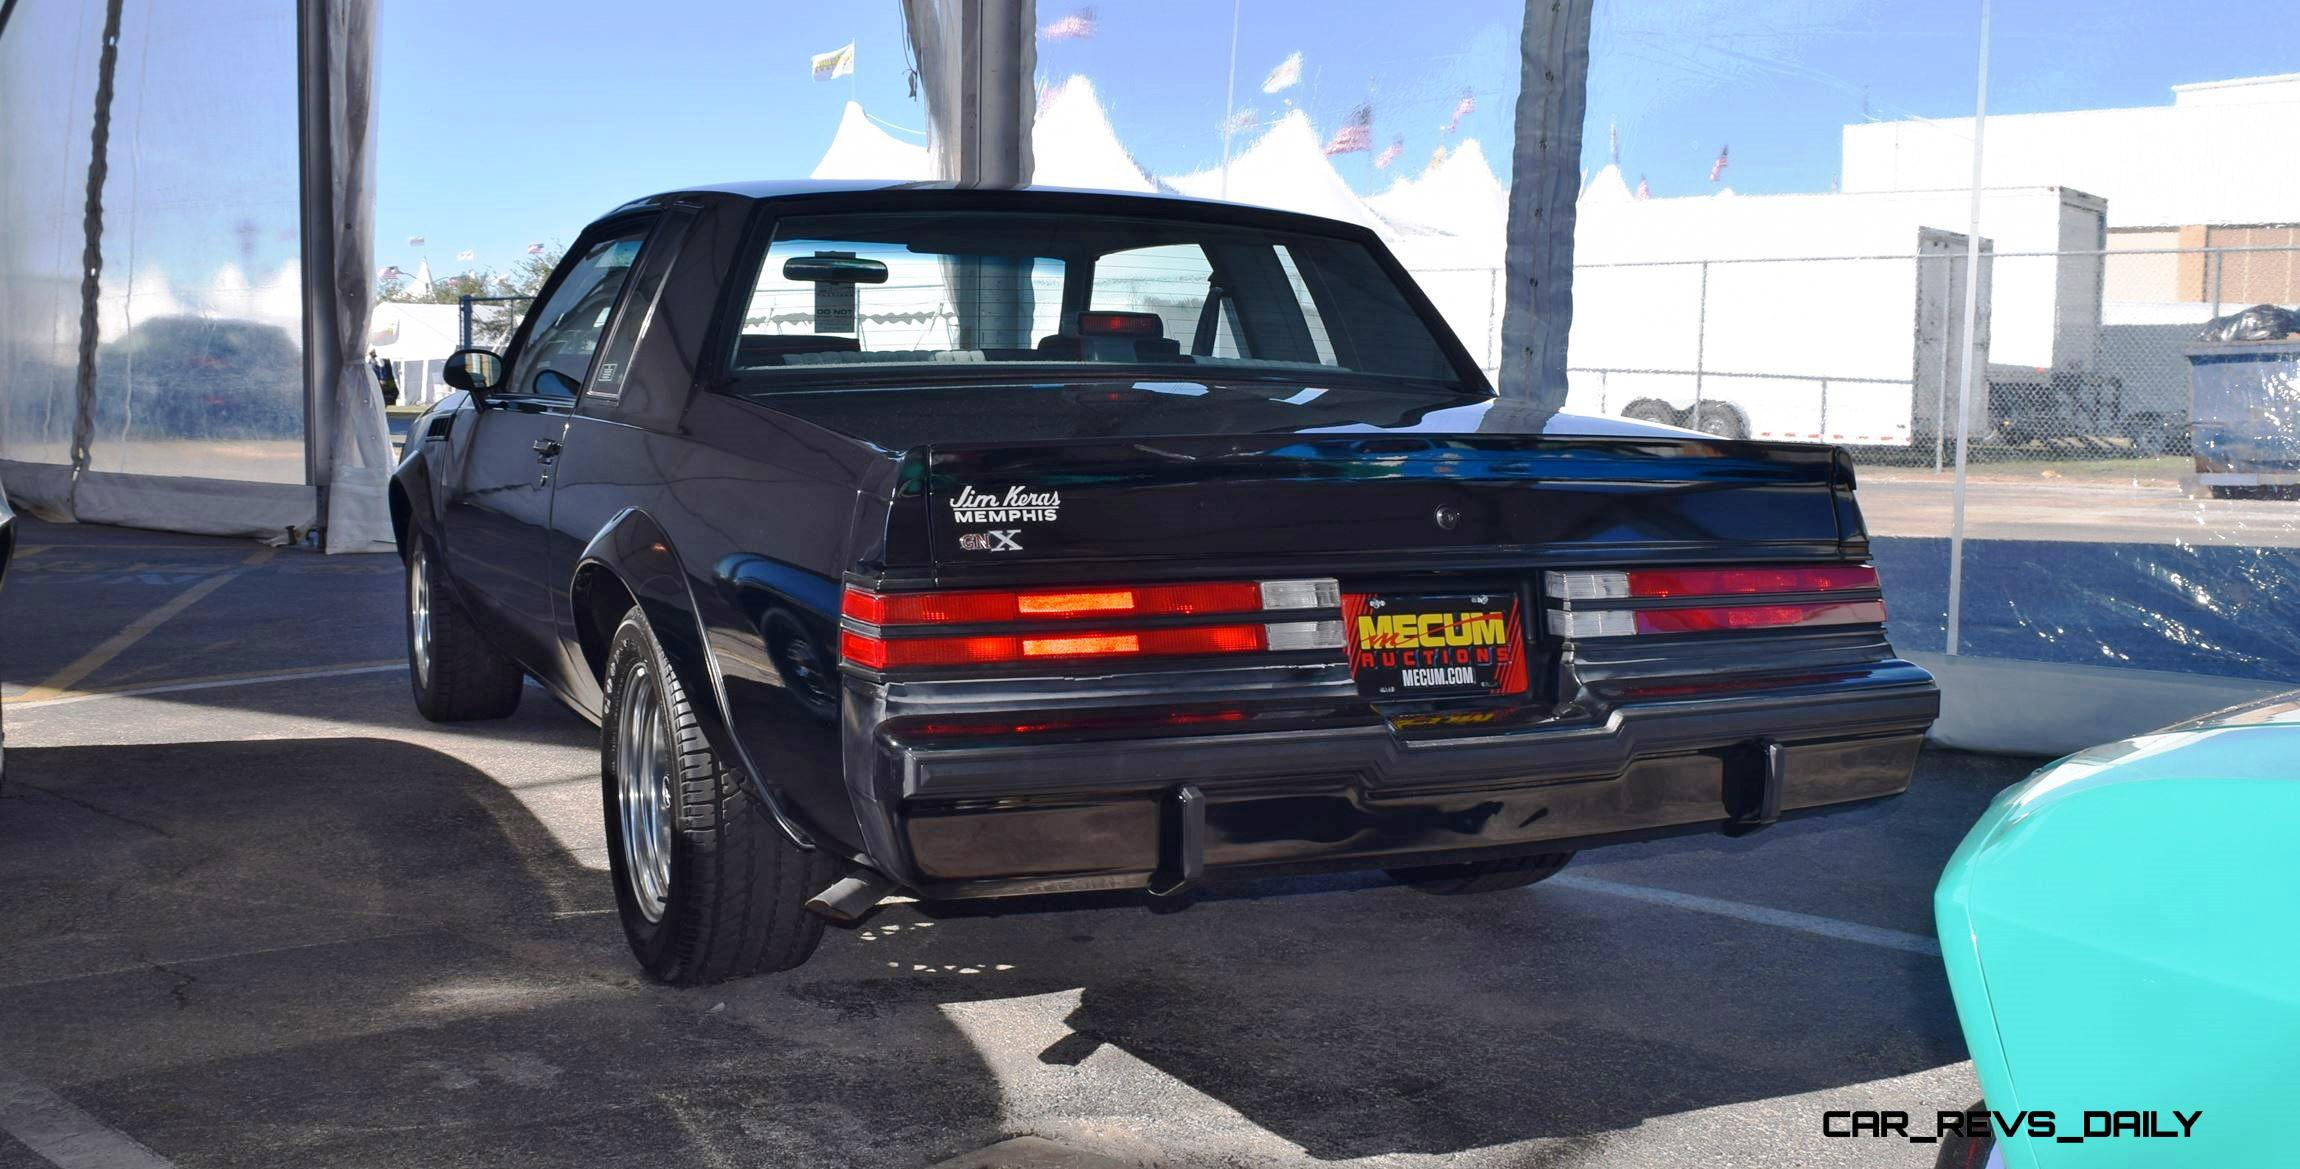 1987 Buick Gnx By Asc Mclaren Detail Photo Flyaround Inside And Out 187 Car Revs Daily Com